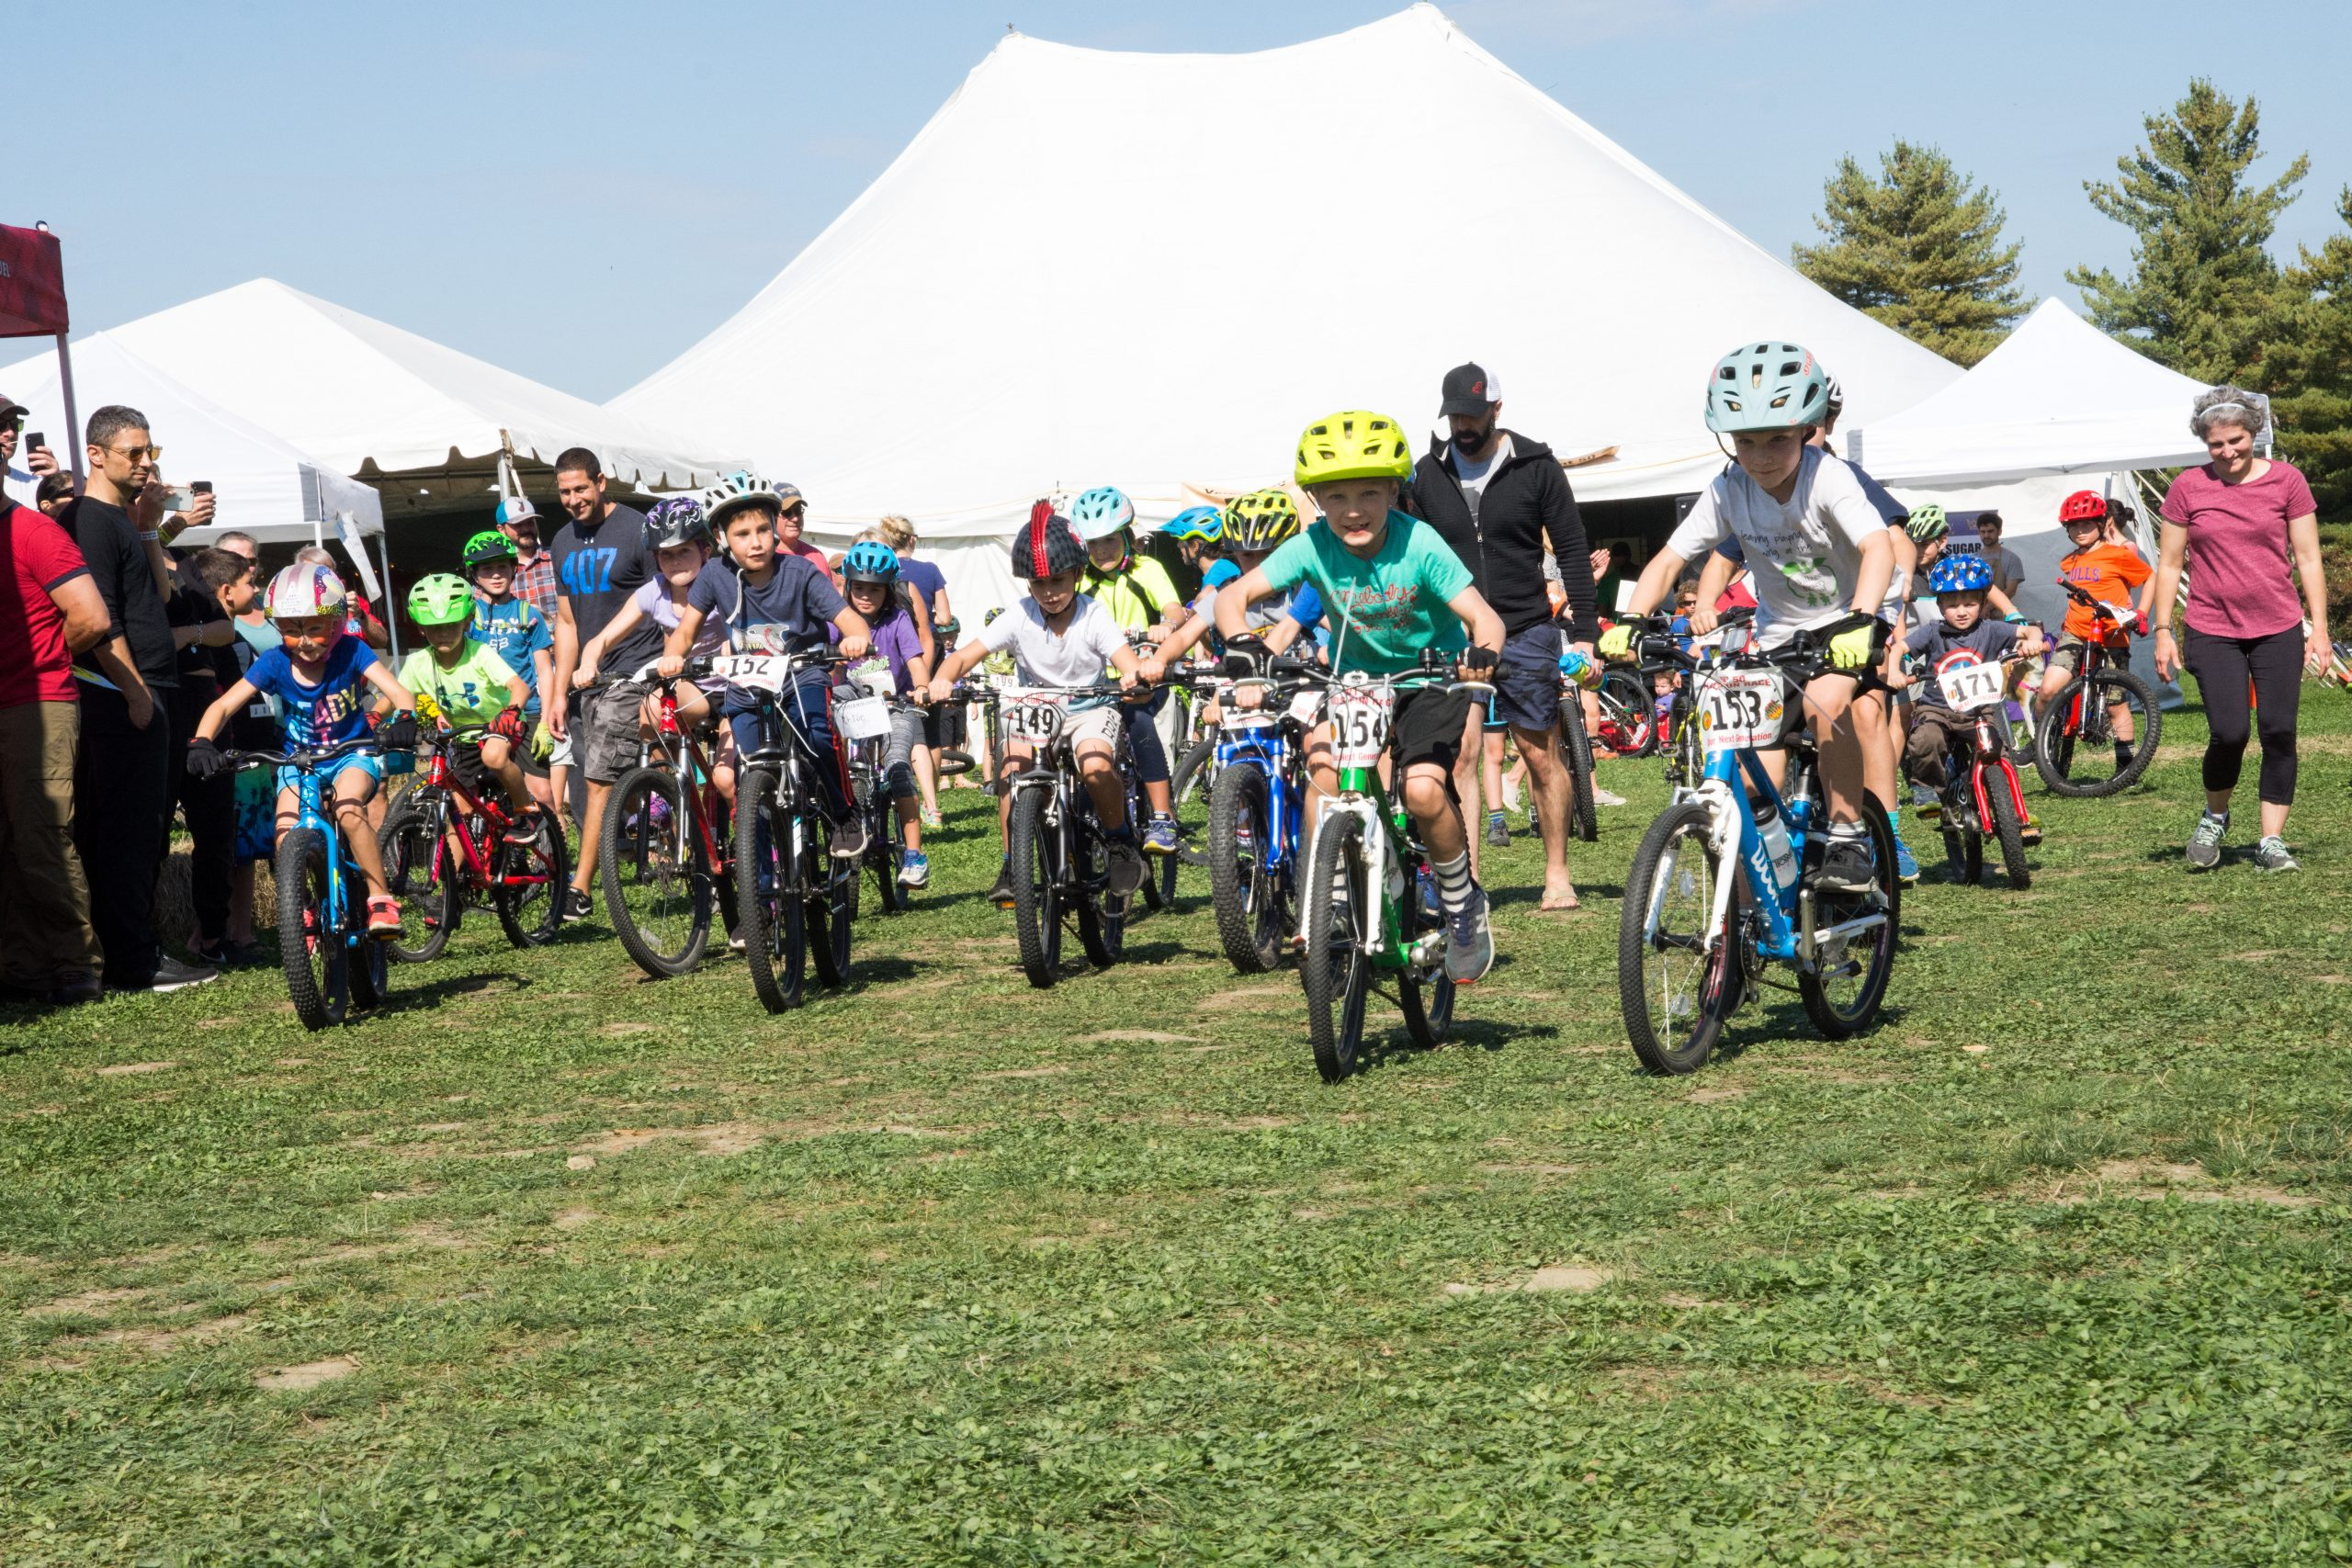 27th Annual Vermont 50 Mountain Bike or Ultra Run-Saturday Kids